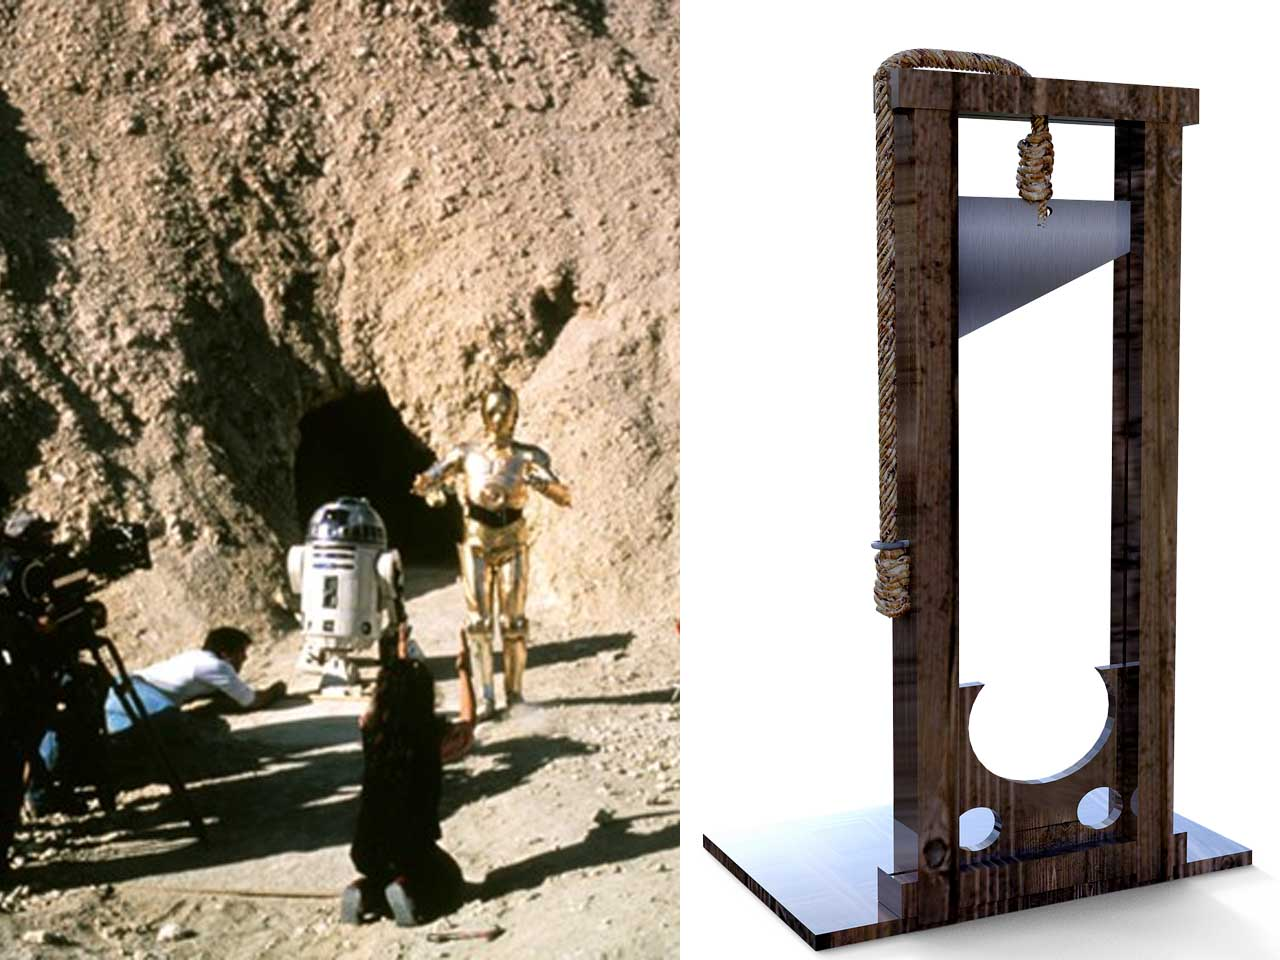 Star Wars was released on May 25, 1977,the same year as the last guillotine execution in France, Star Wars Movie, France,